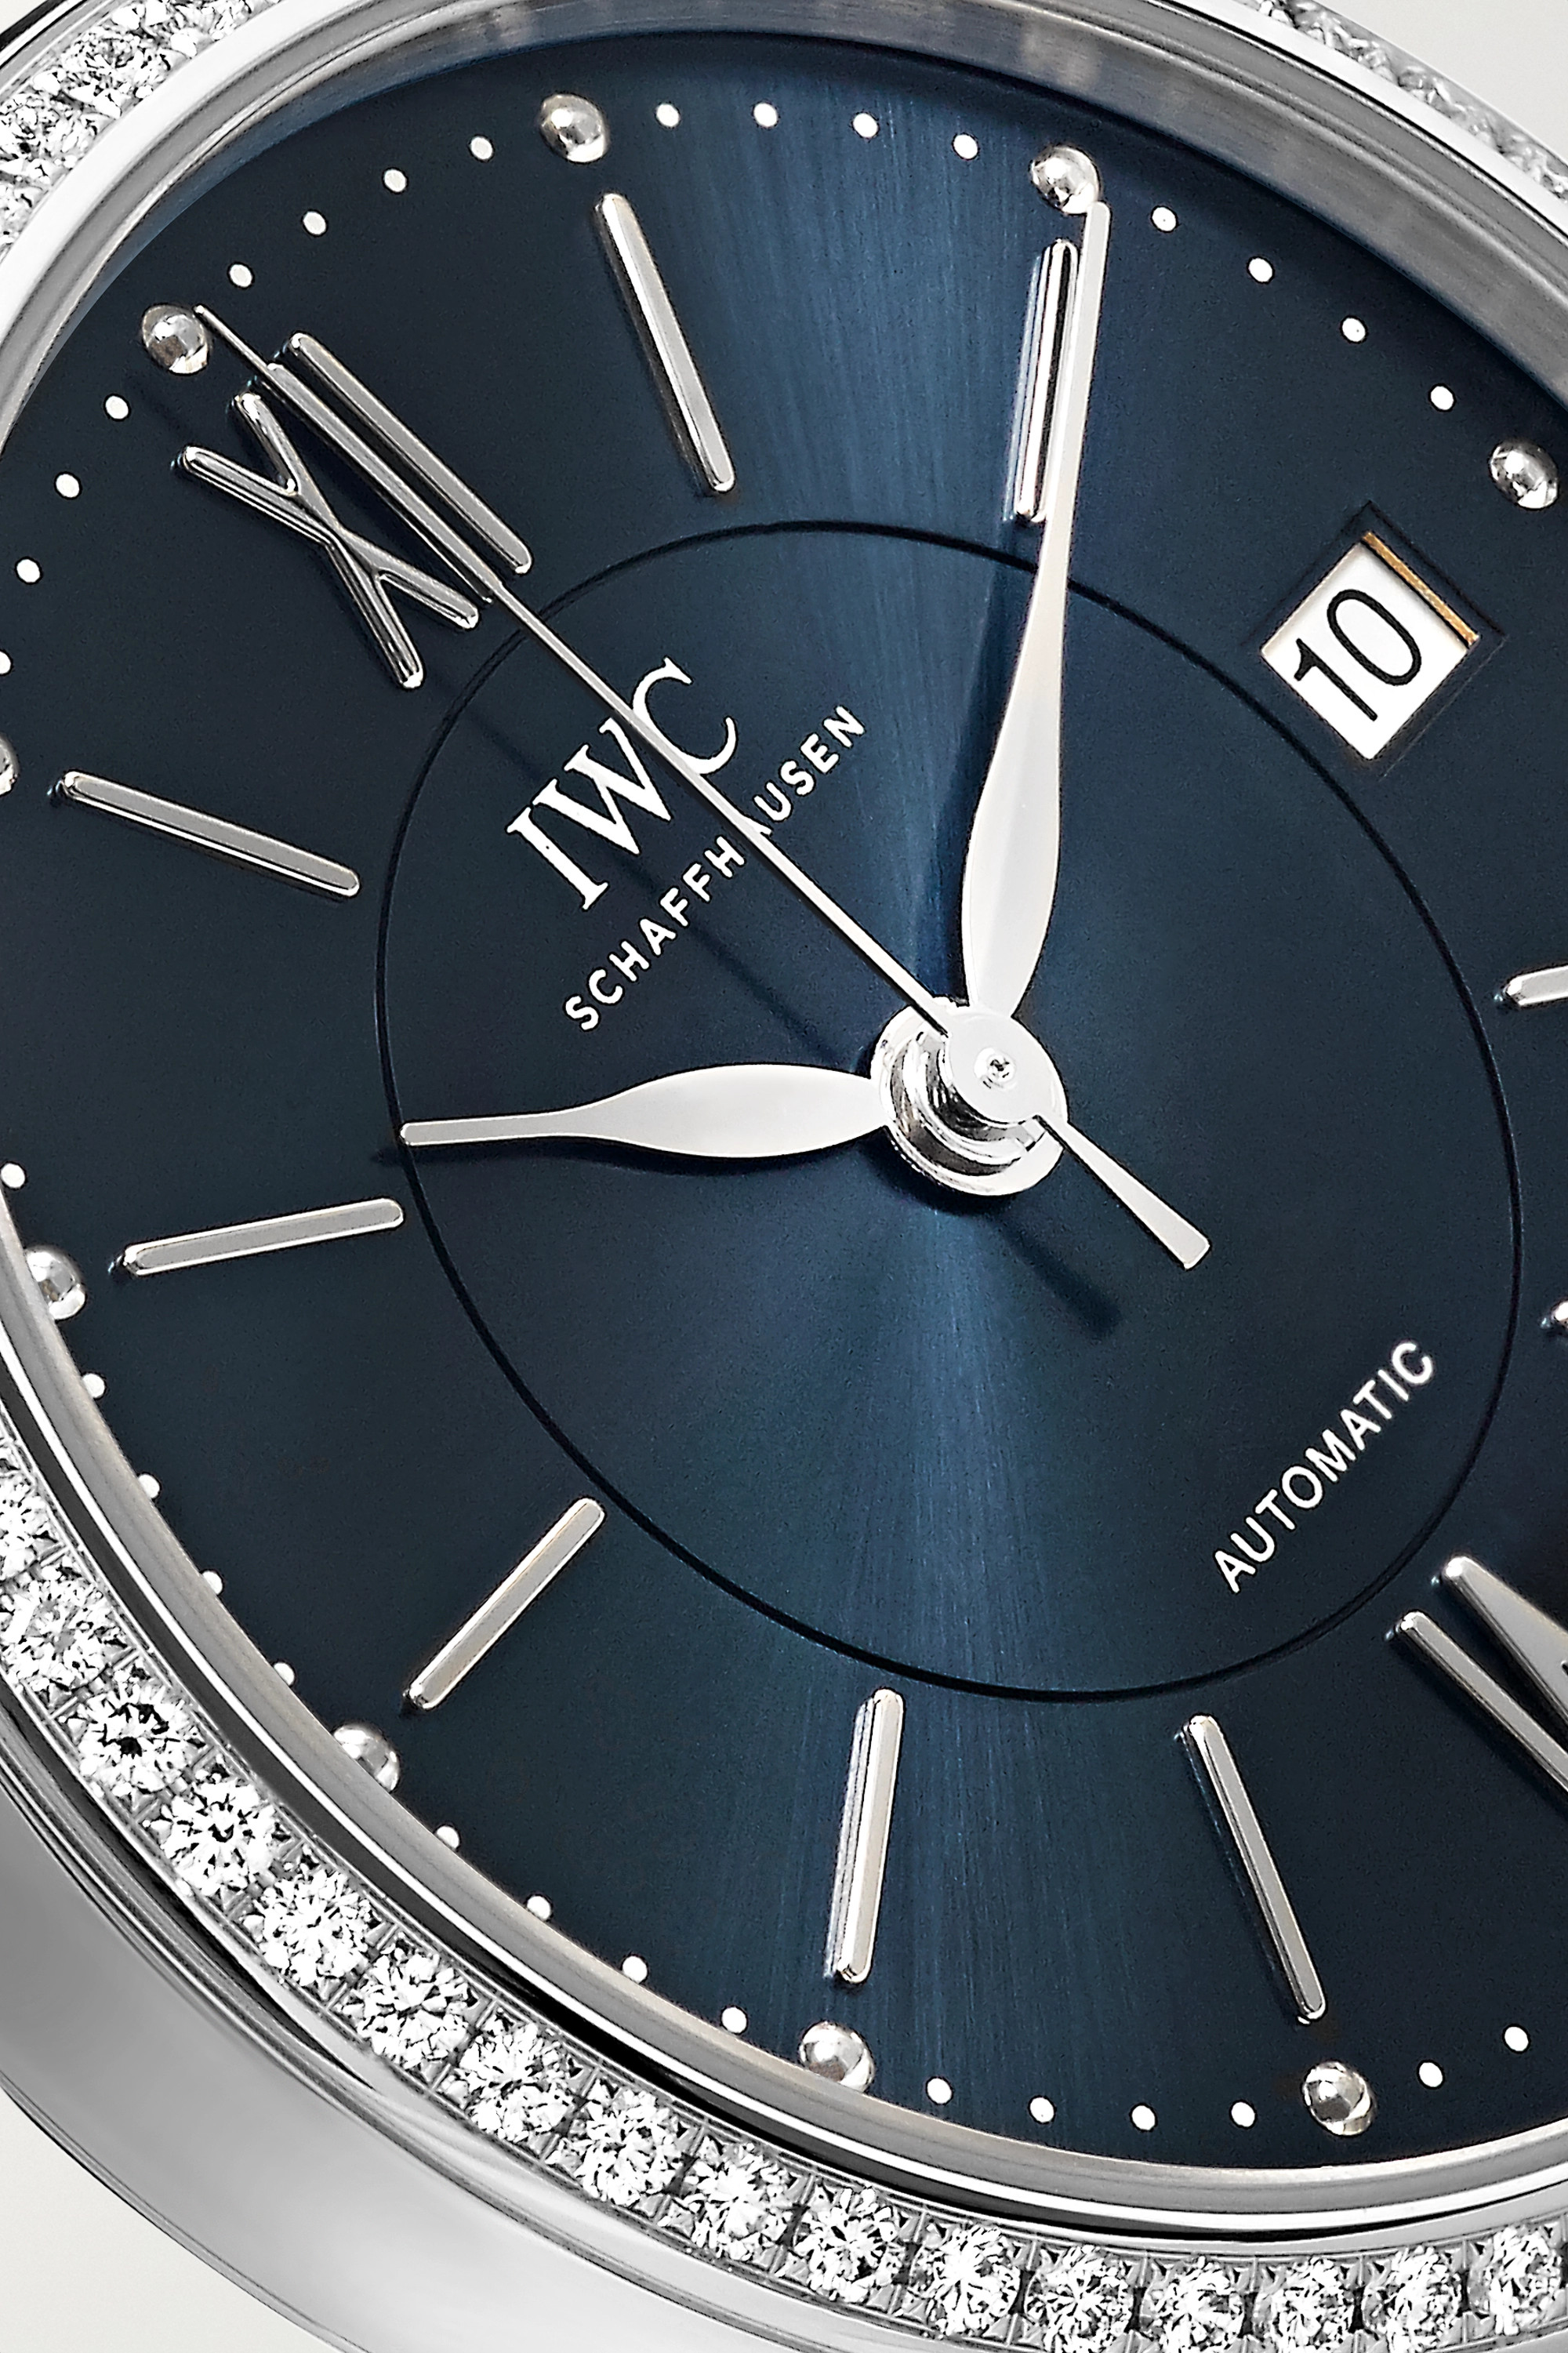 IWC SCHAFFHAUSEN Portofino Automatic 37 alligator, stainless steel and diamond watch